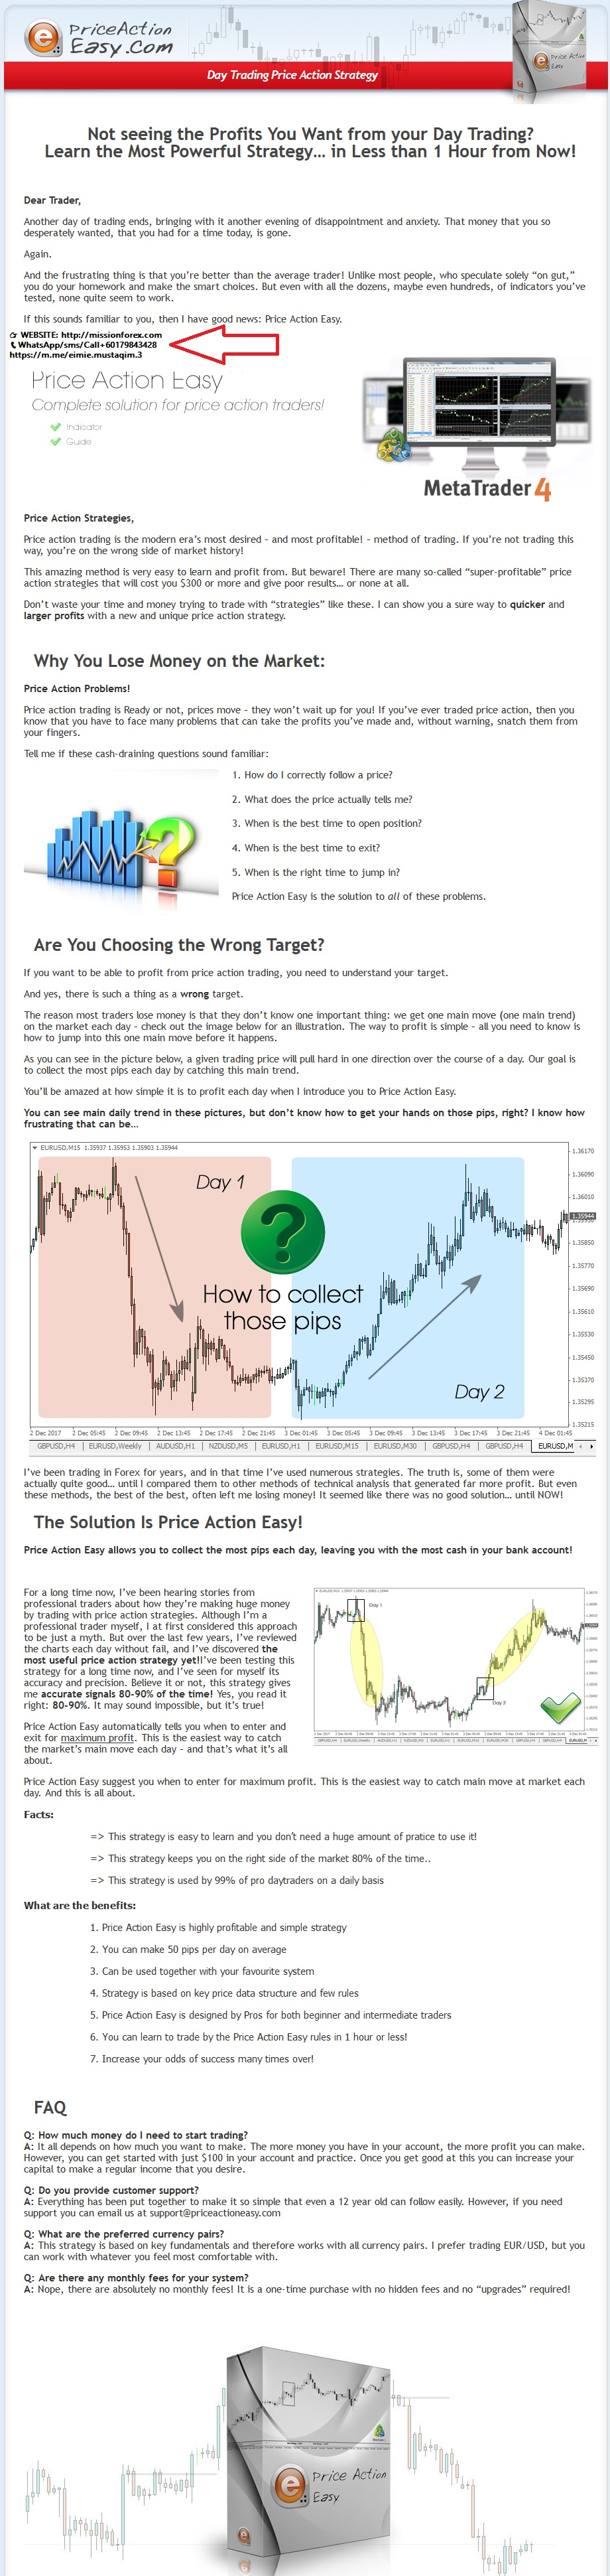 Price Action Easy comes with indicator